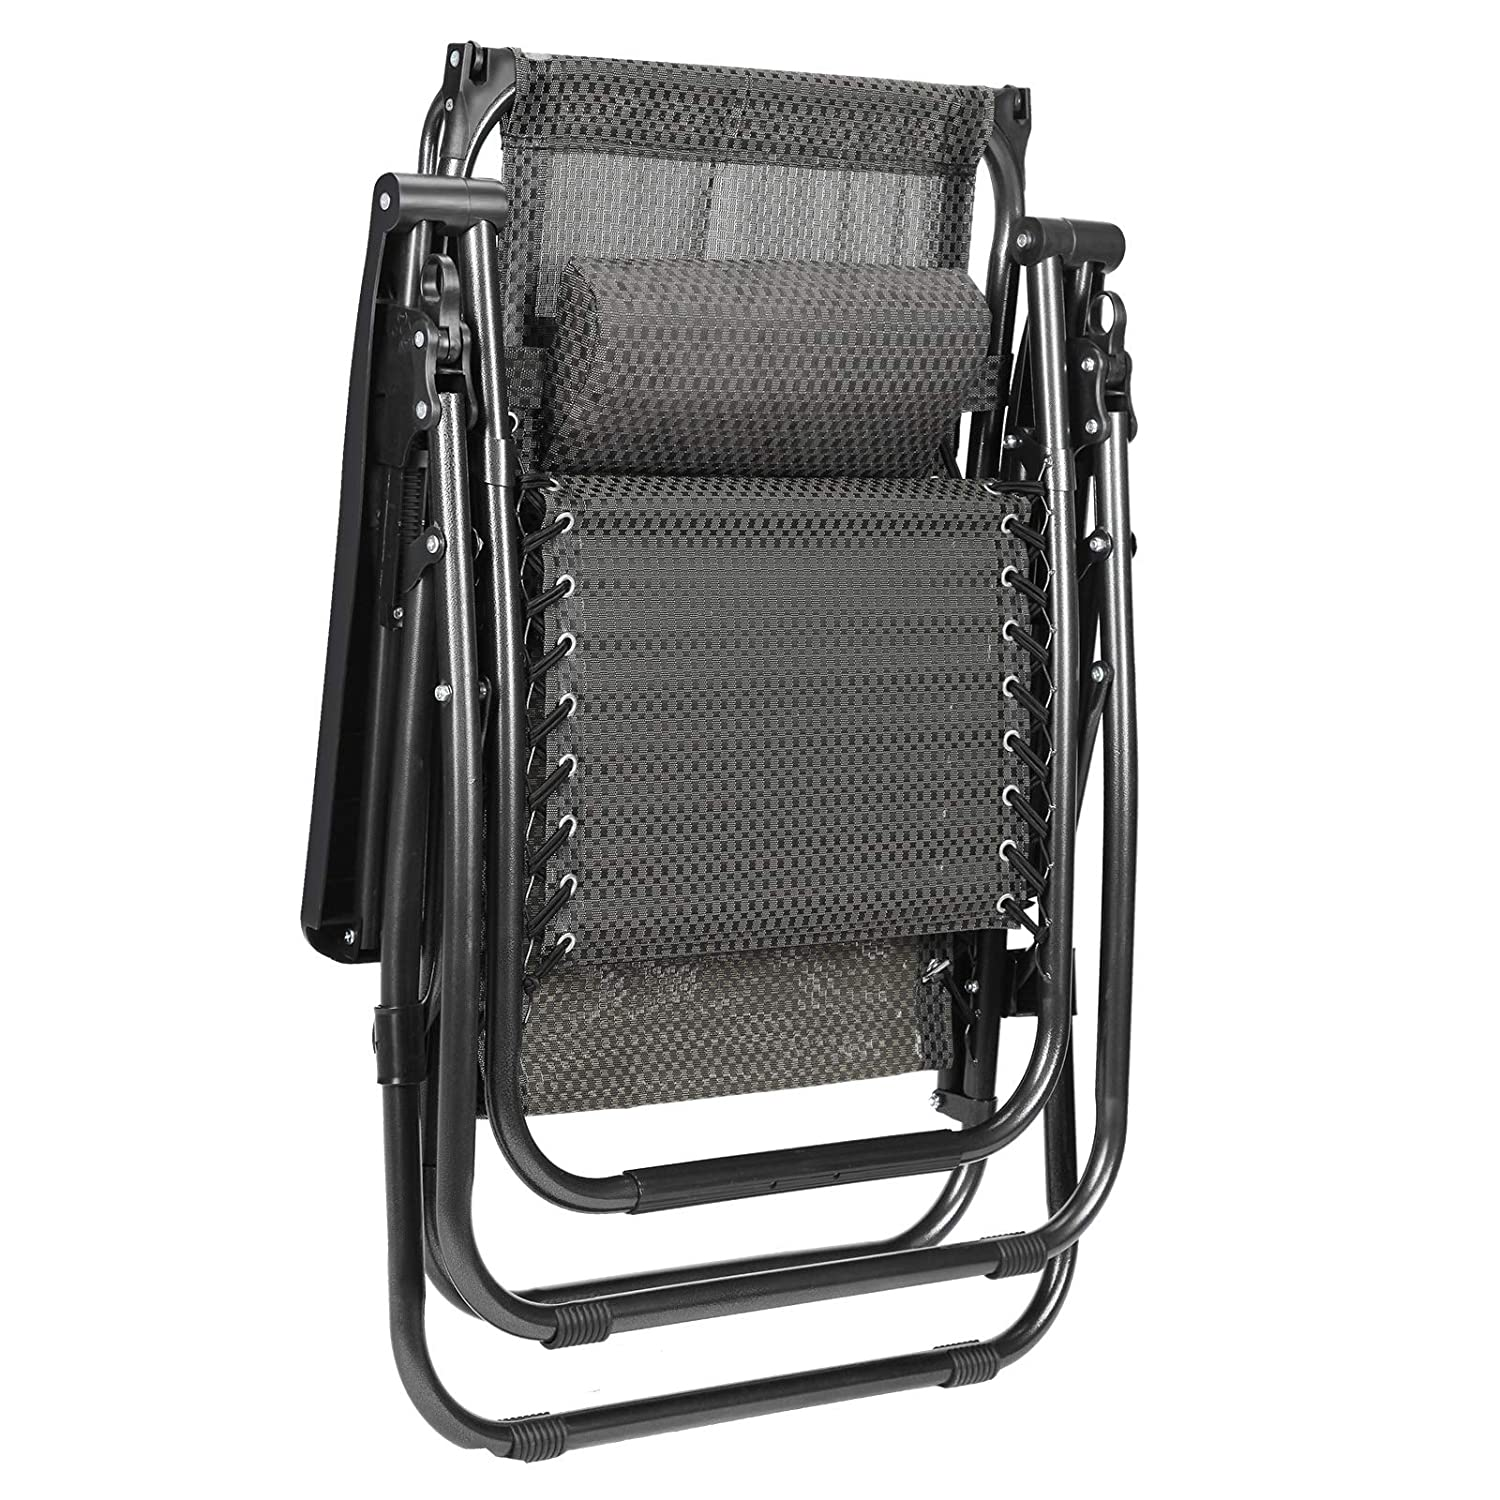 Amazon.com: Vosson - Silla reclinable de gravedad cero para ...